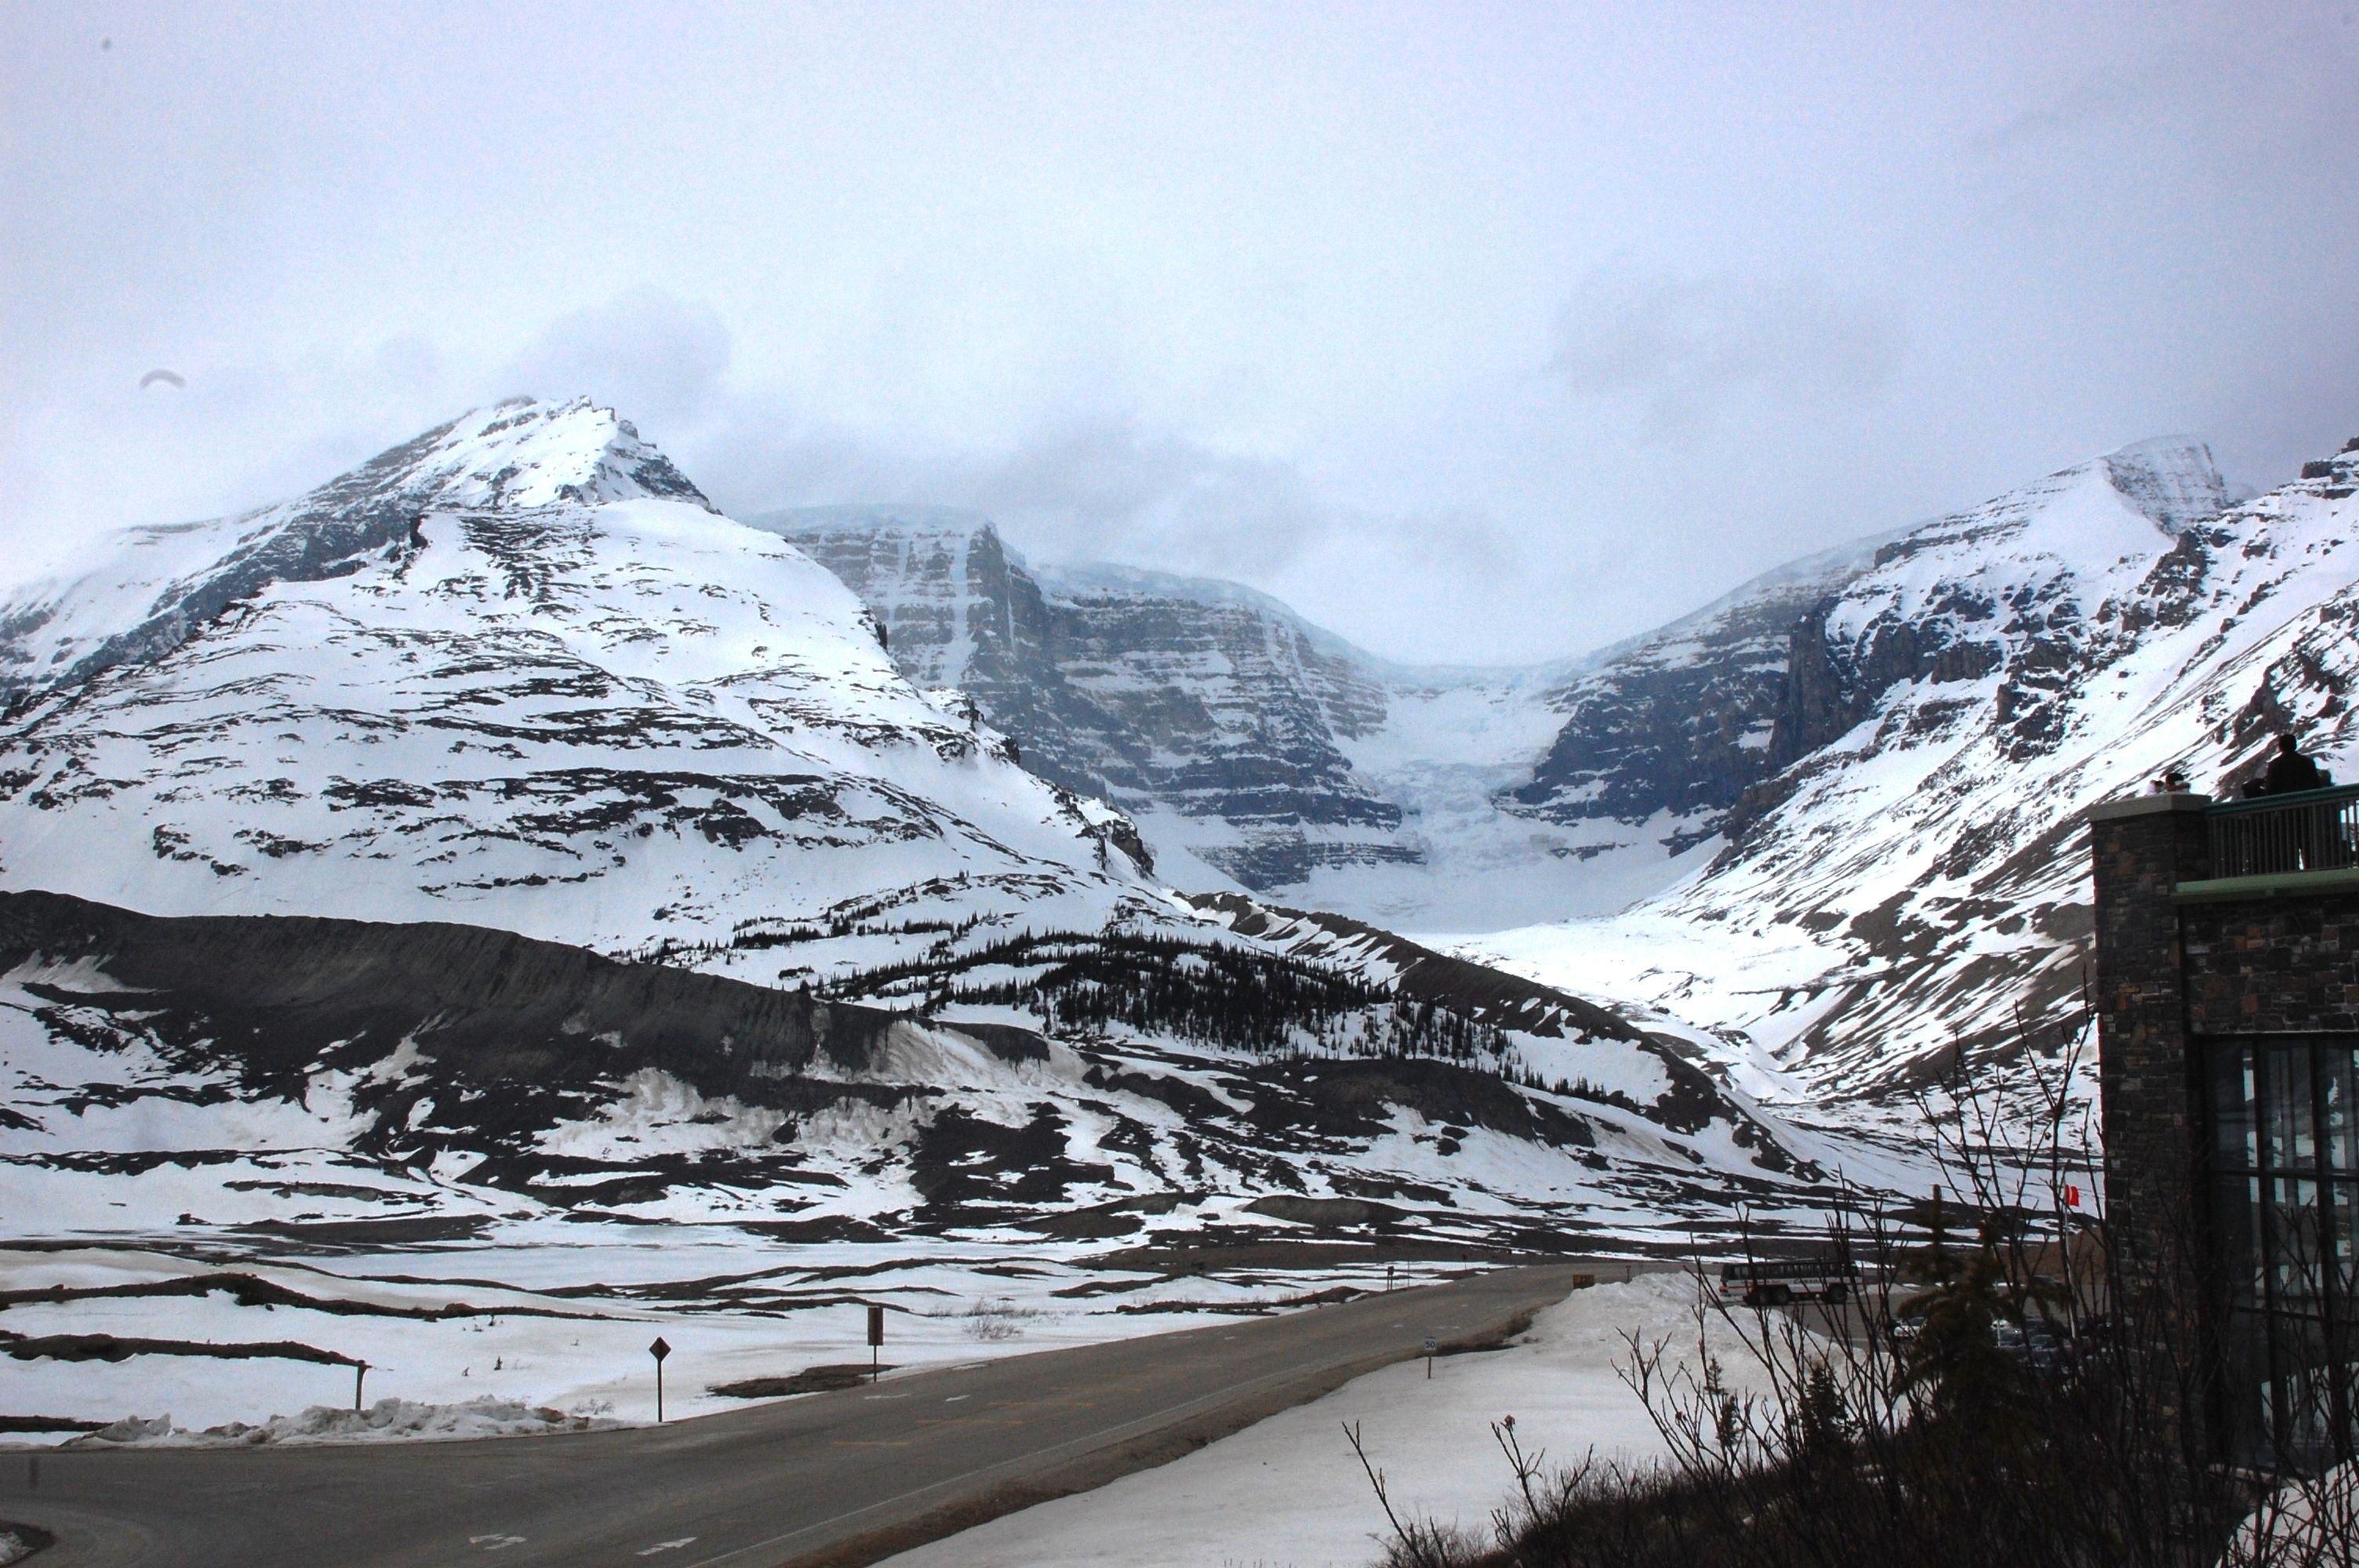 Snowy peaks surrounding the Icefields Parkway